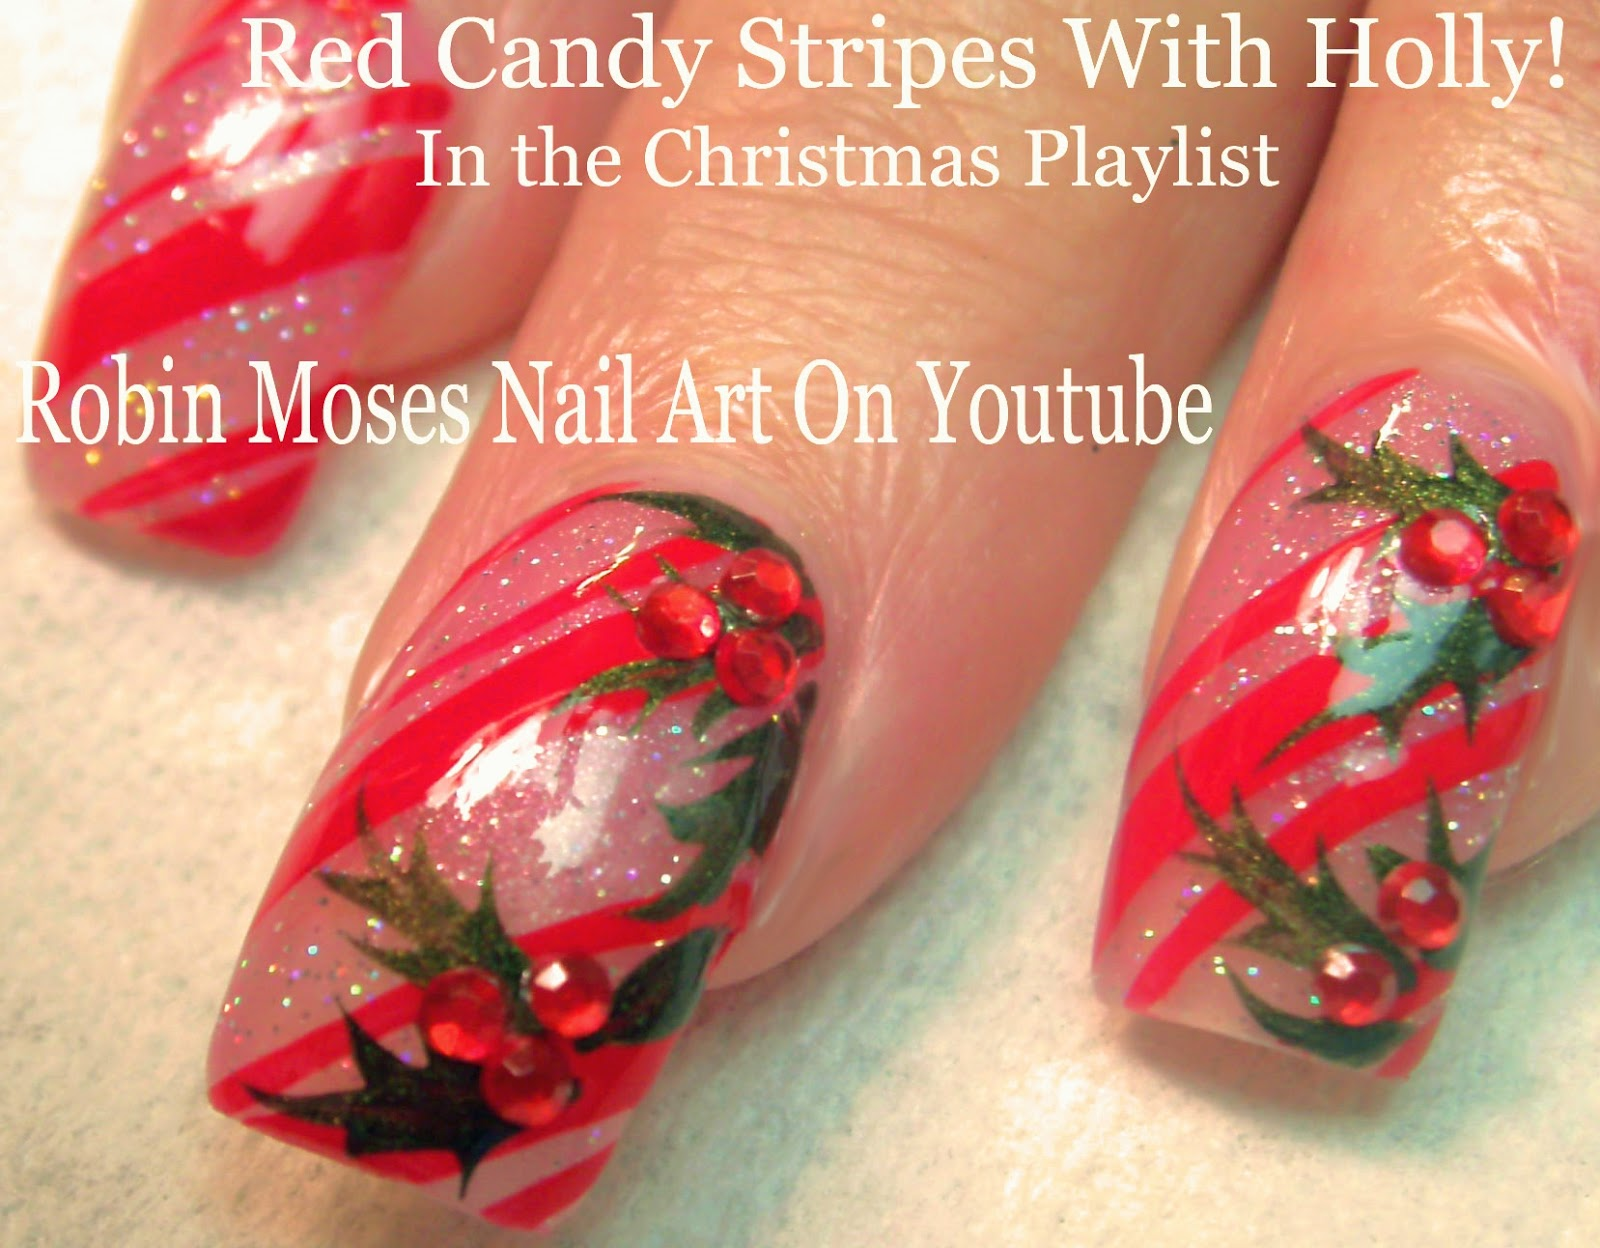 Robin moses nail art yes christmas candy cane stripe nail art christmas candy cane stripe nail art with holly berries that bling christmas nail art easy christmas nails christmas designs xmas nails xmas prinsesfo Gallery